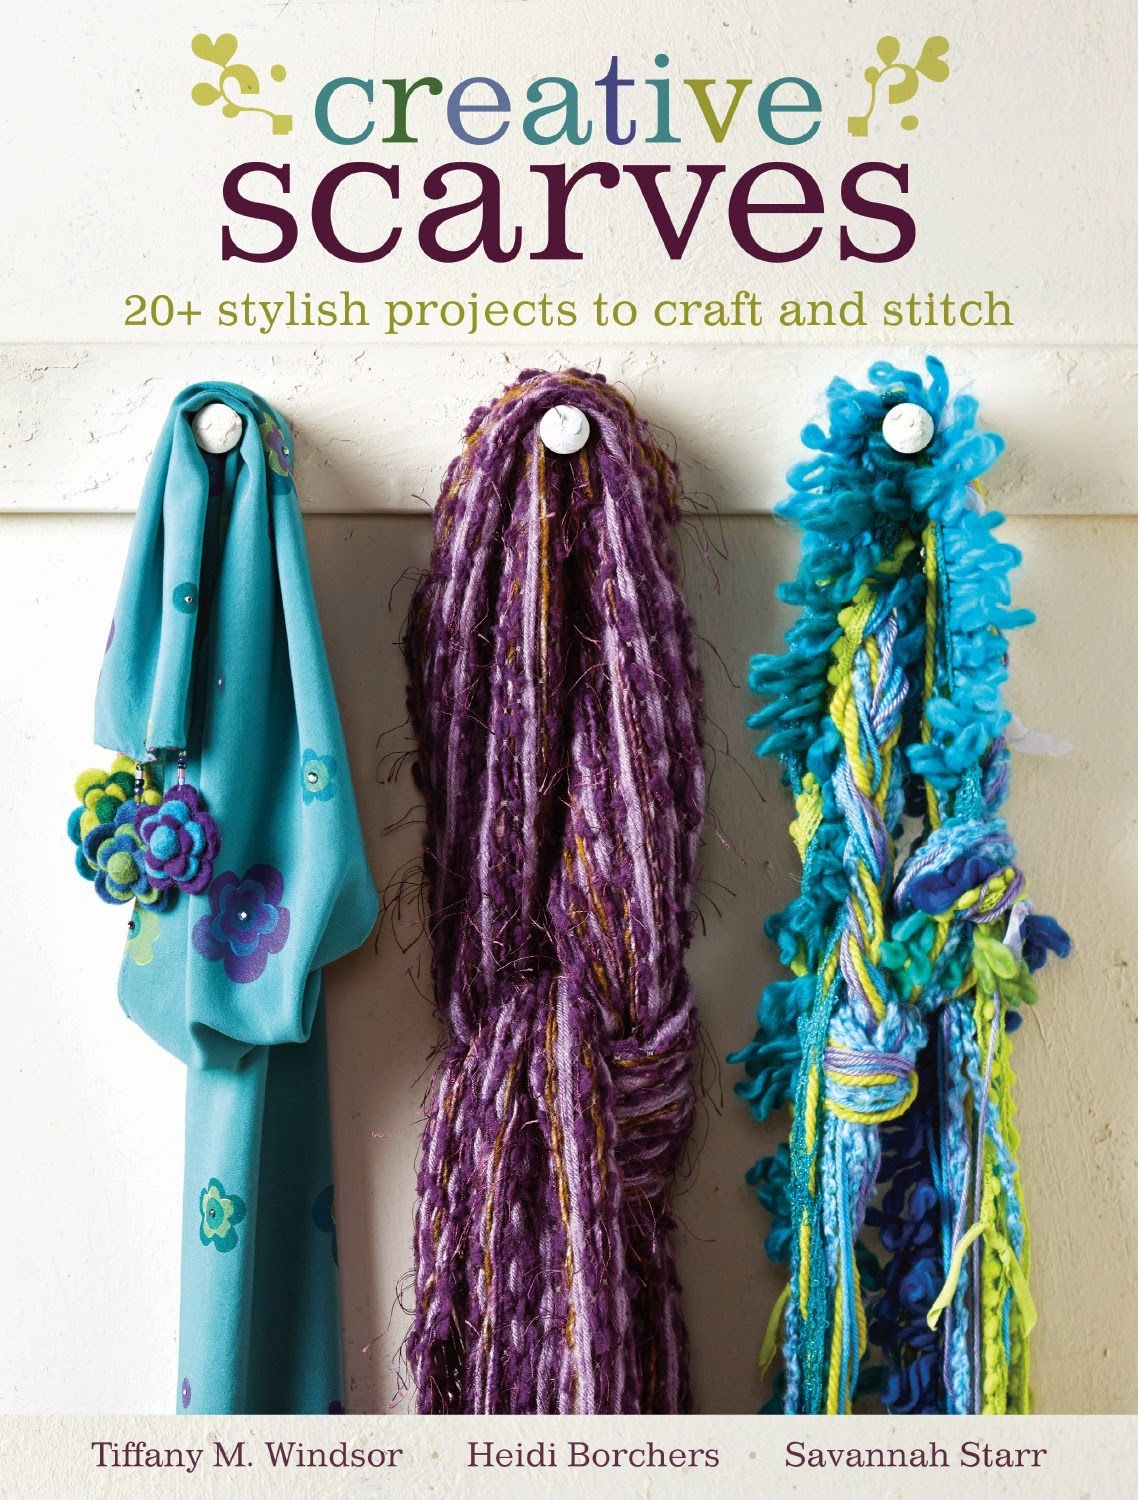 creative scarves by tiffany windsor